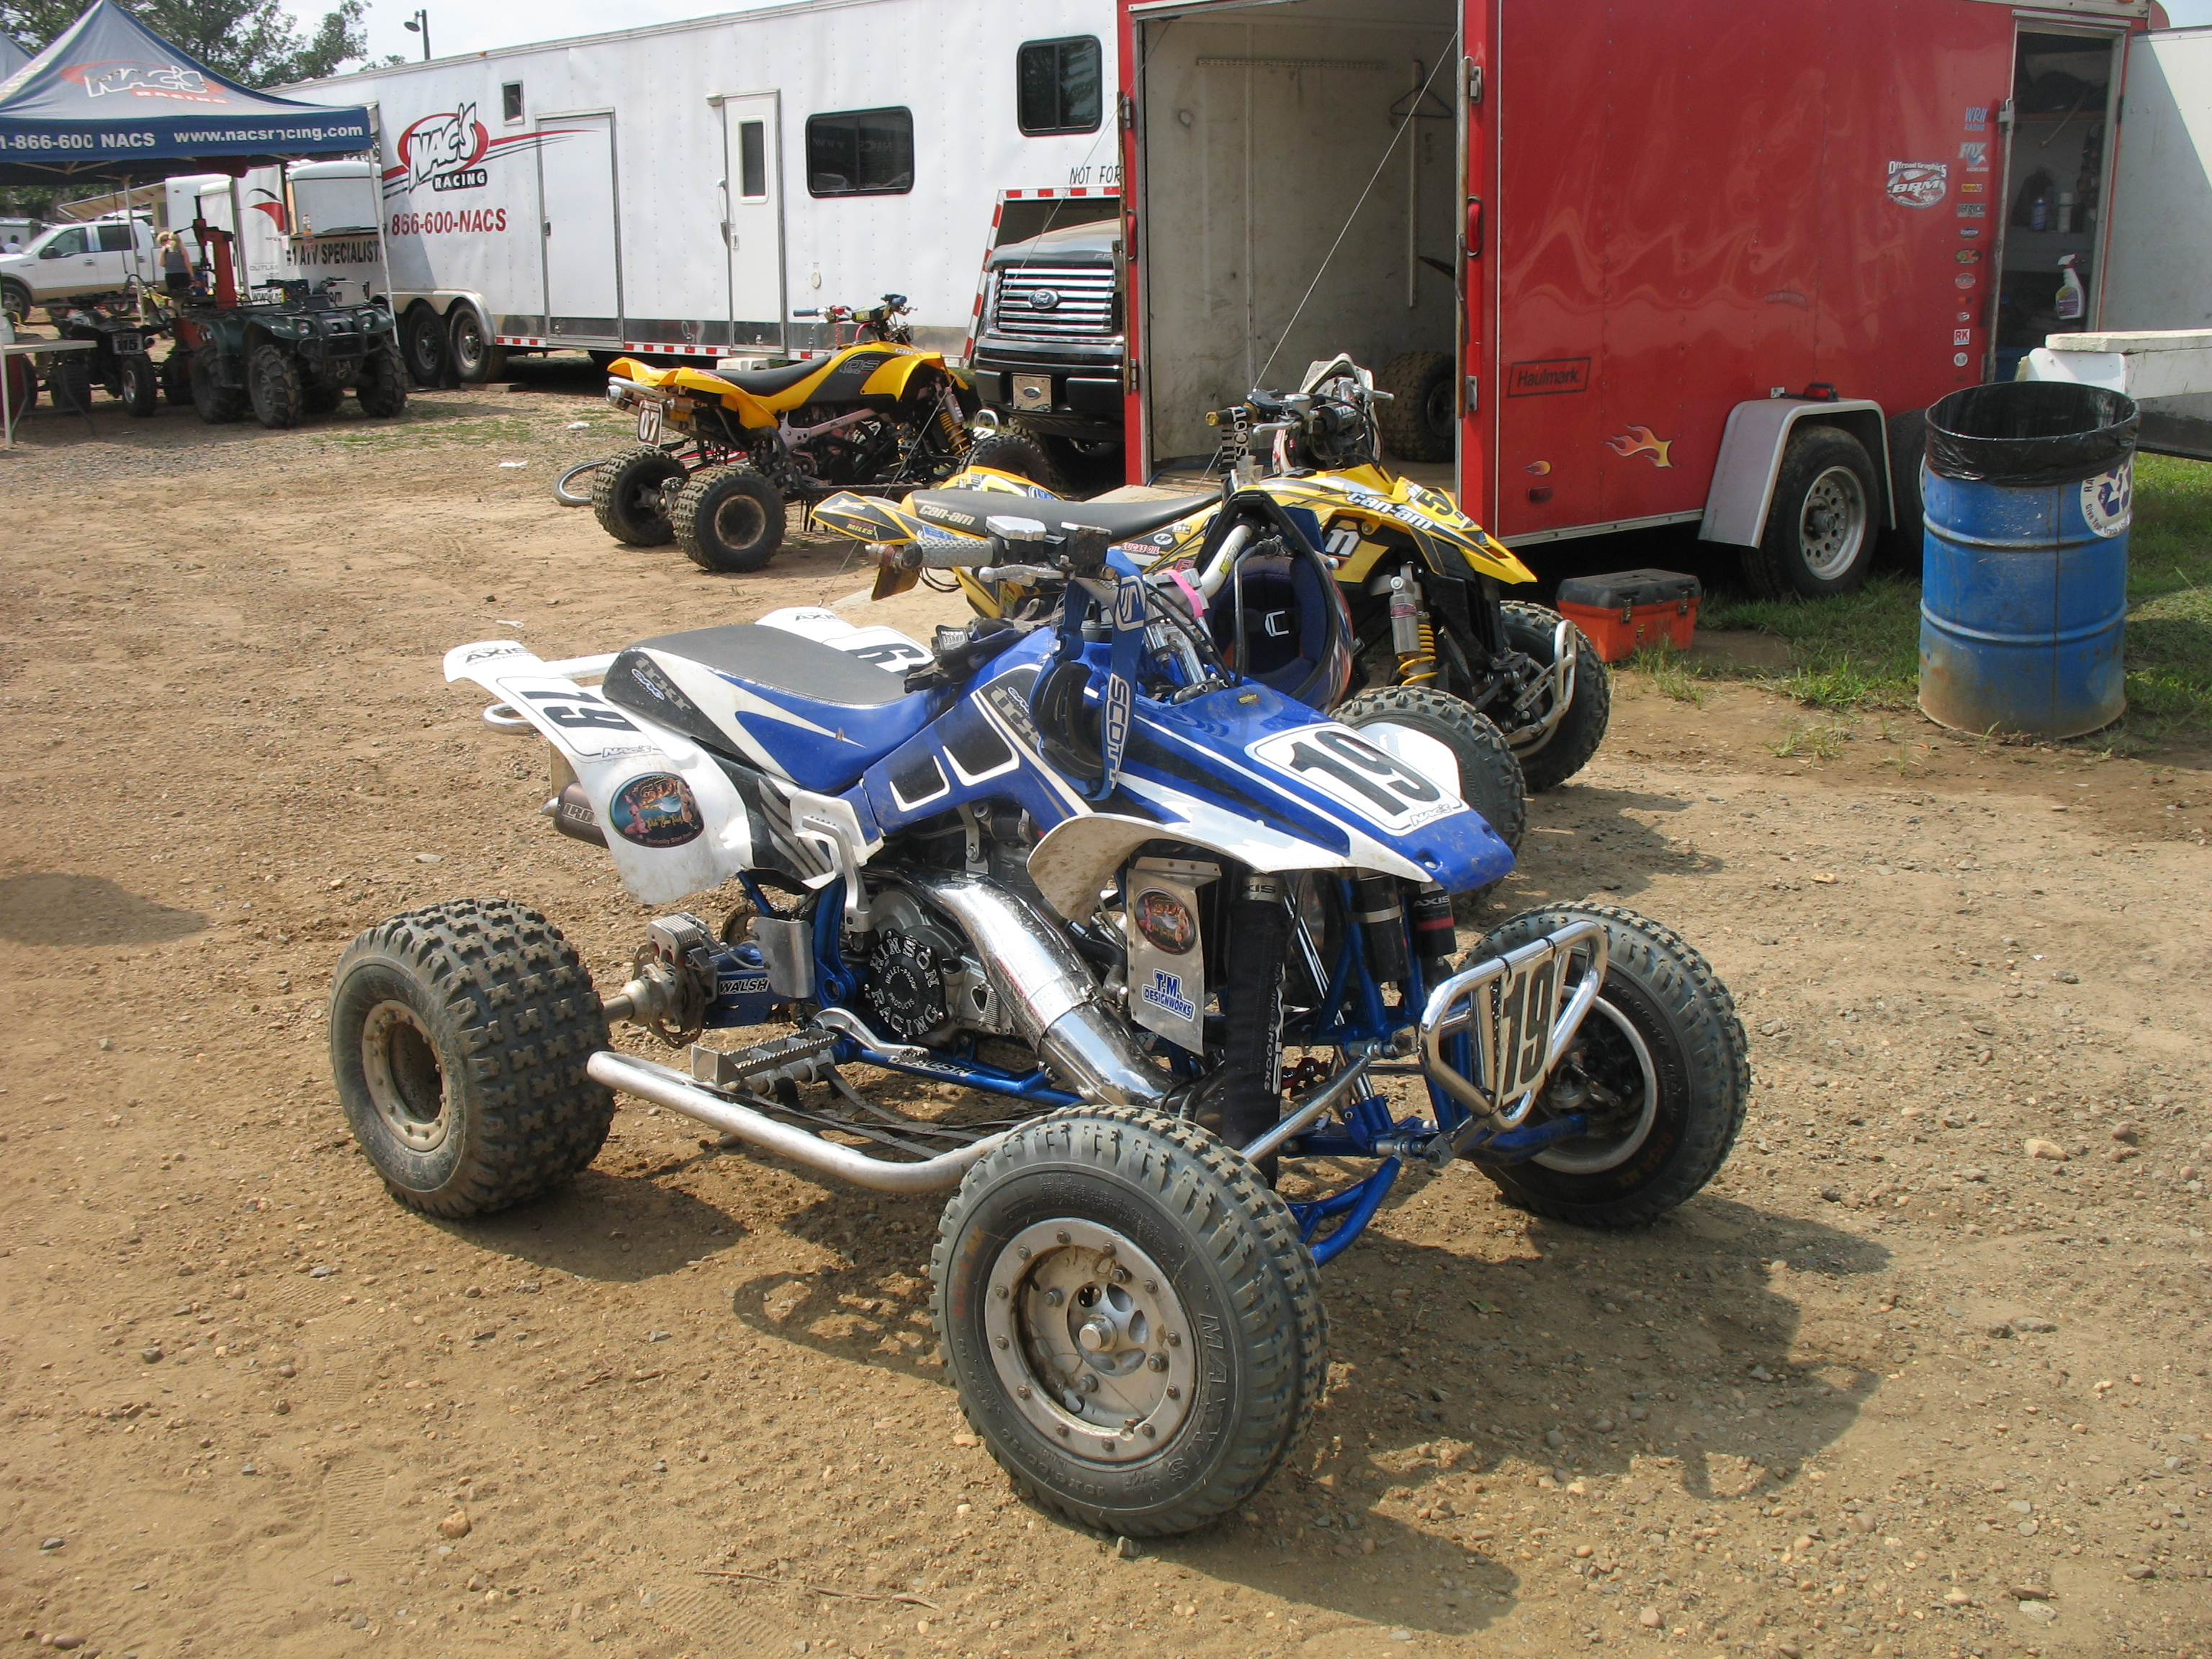 Click image for larger version.  Name:Current Walsh 250r.jpg Views:62 Size:4.01 MB ID:60441